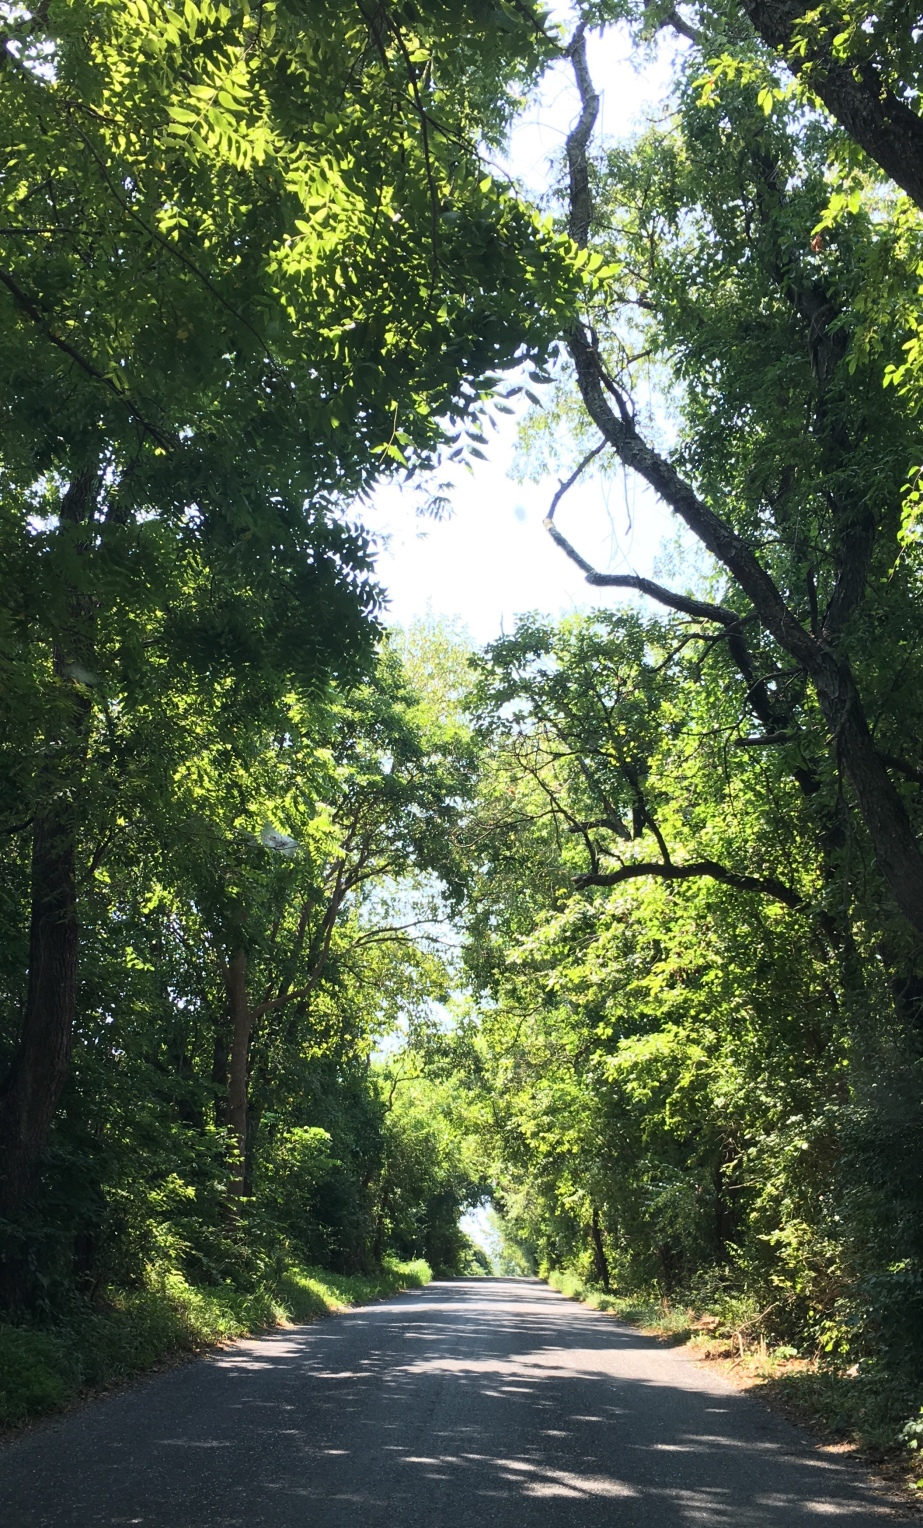 Looking down a country road, bordered by trees.